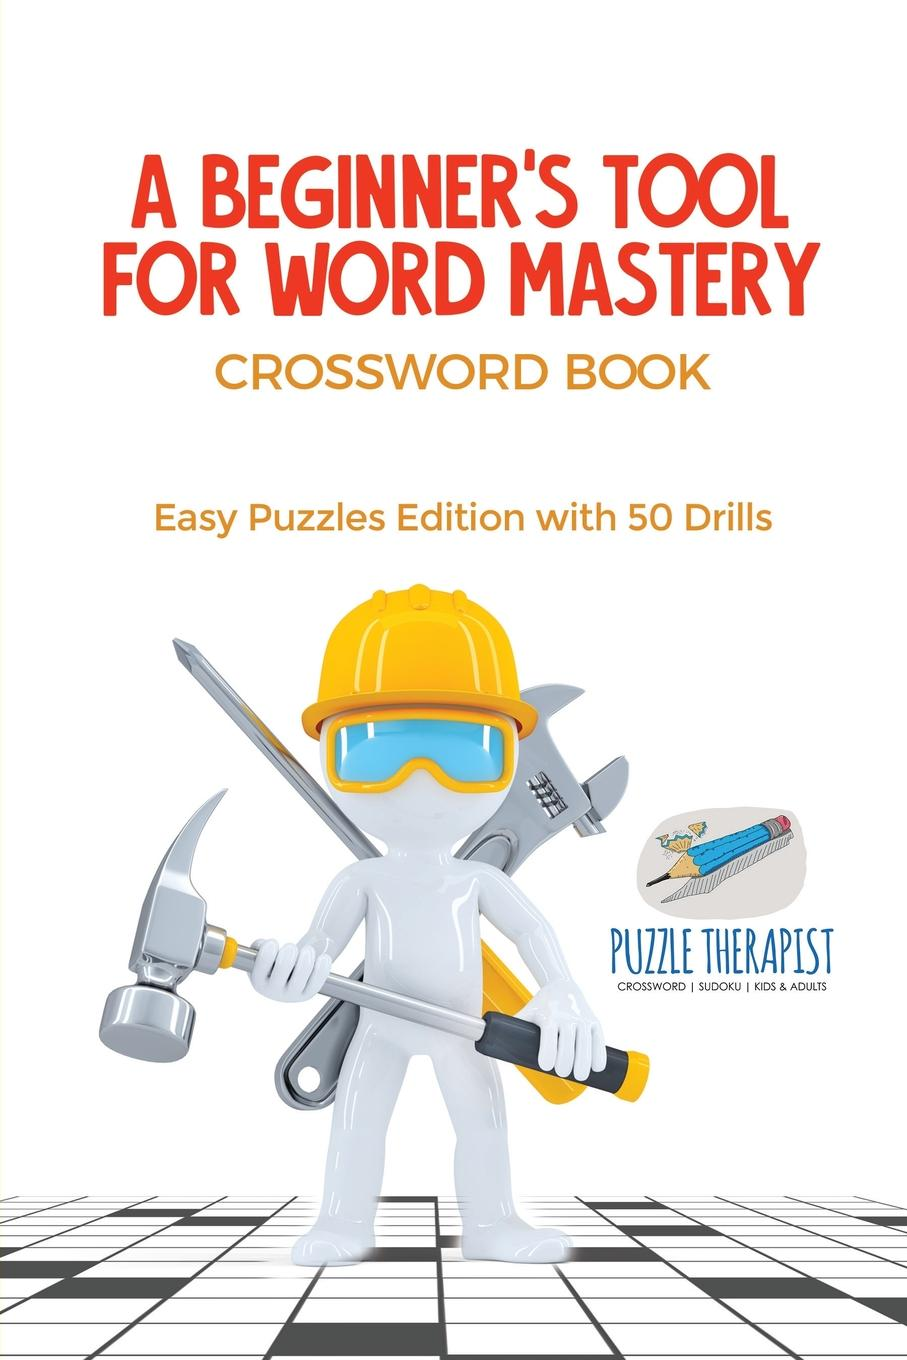 Puzzle Therapist A Beginner.s Tool for Word Mastery . Crossword Book . Easy Puzzles Edition with 50 Drills keyboard mastery